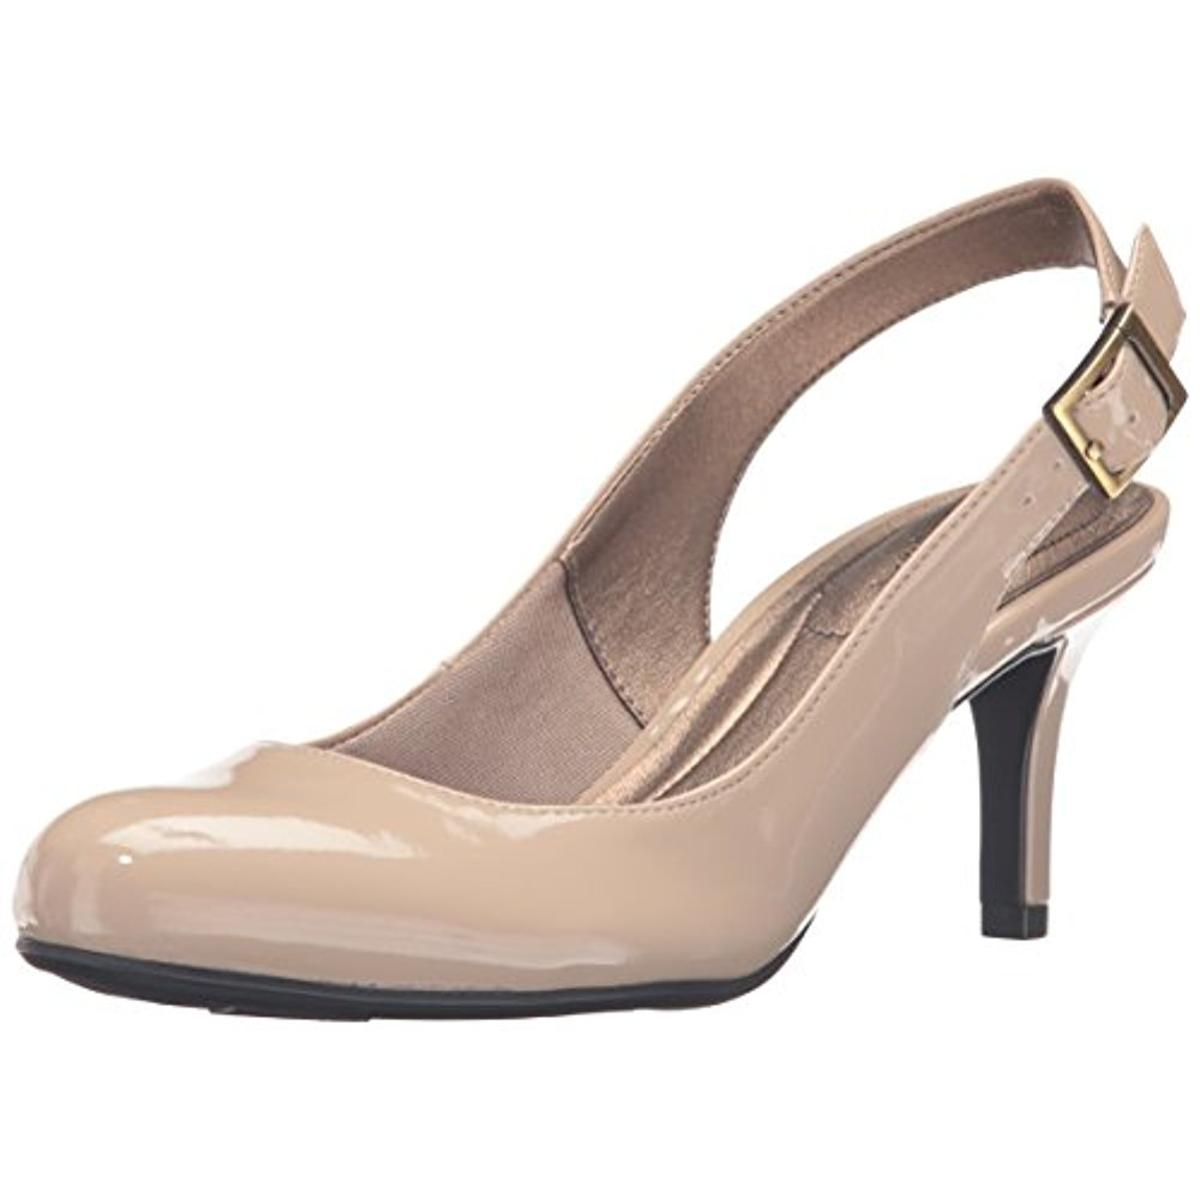 Trotters, classy comfortable women's shoes in wide range of sizes and widths. FREE Shipping and FREE Returns.